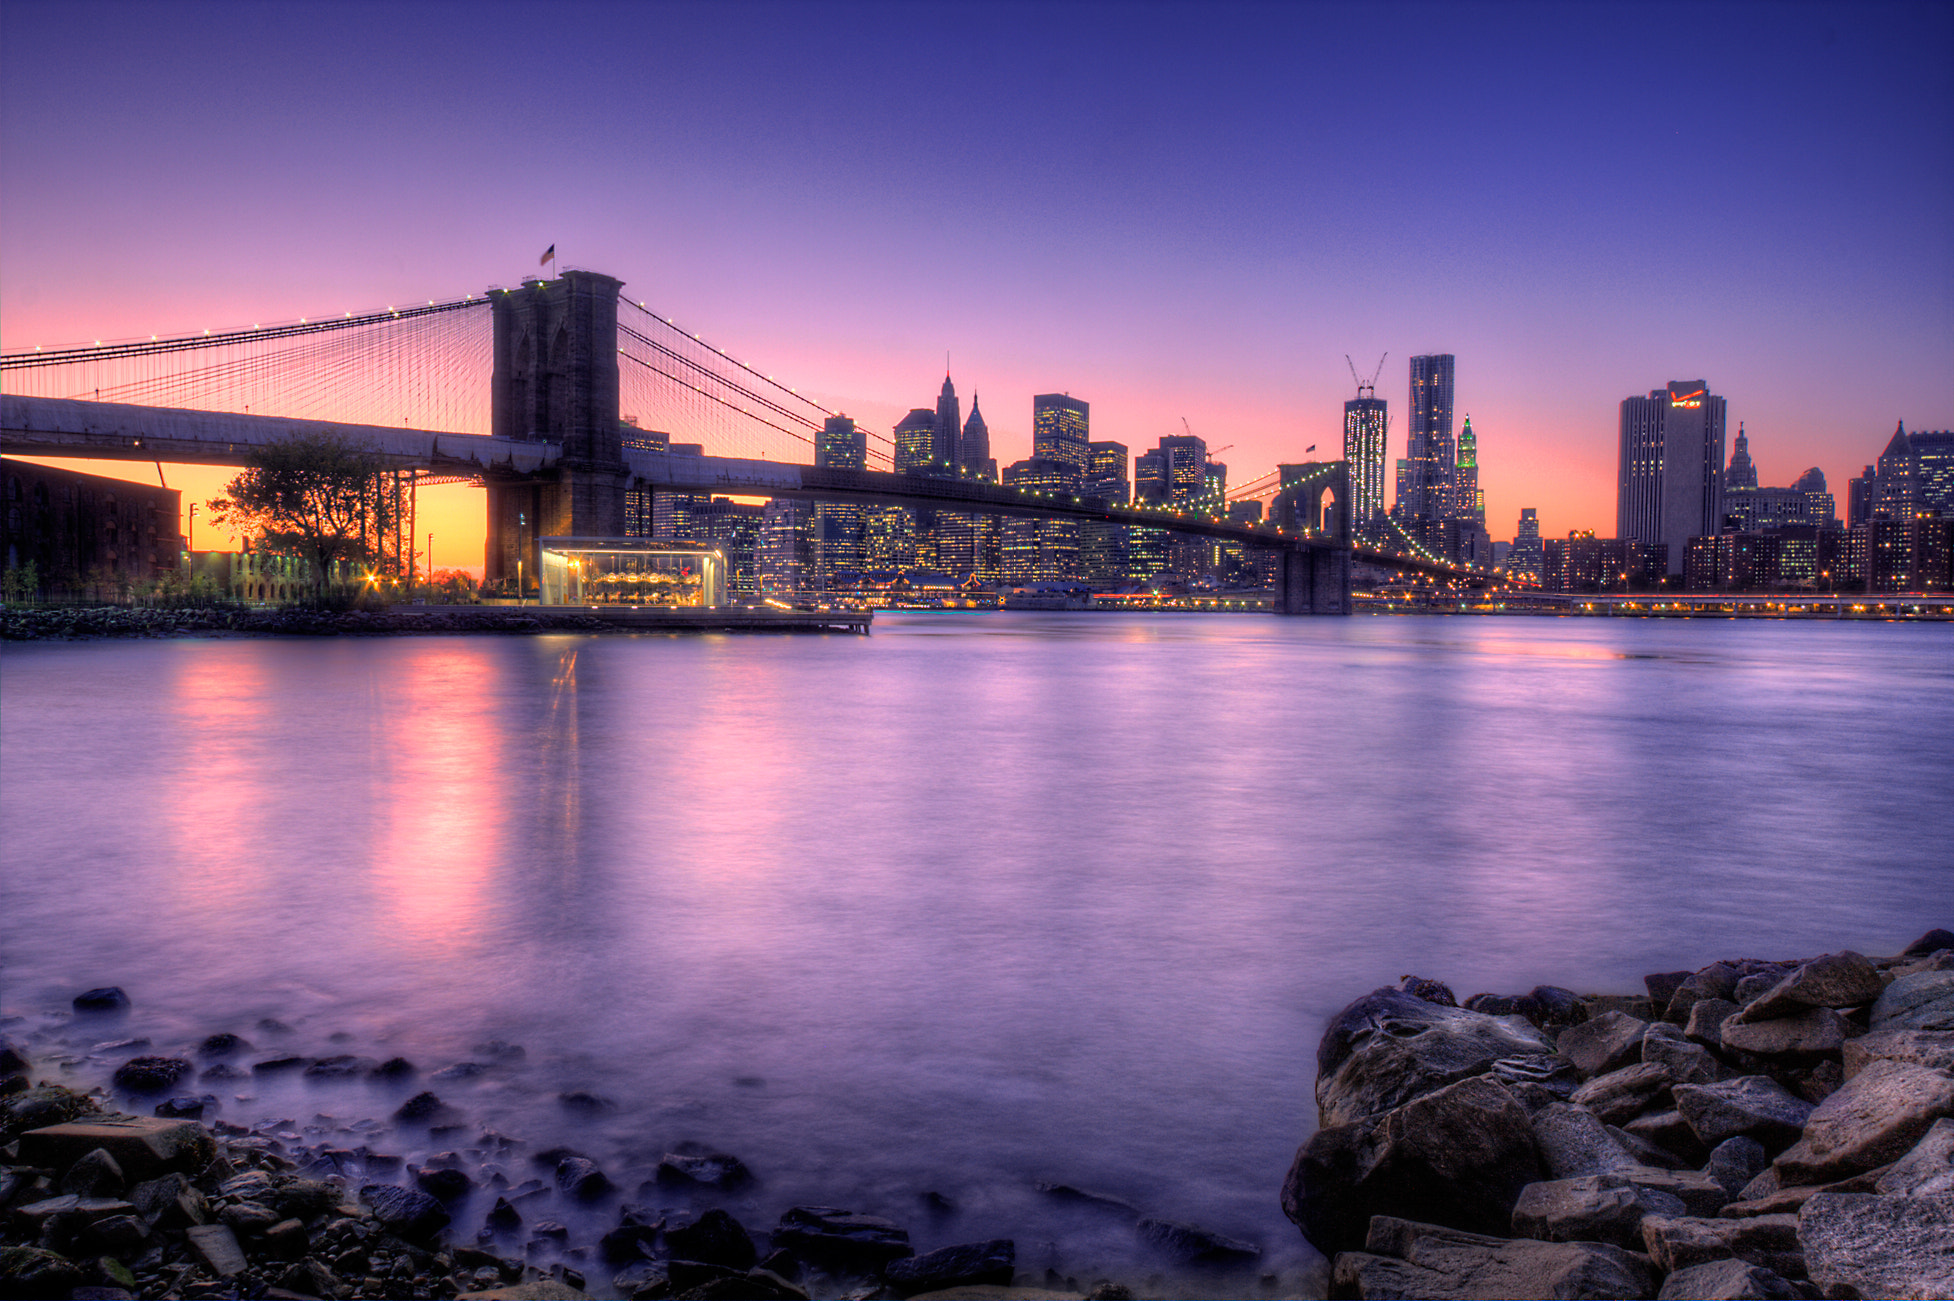 Photograph Brooklyn bridge by Anh Dinh on 500px